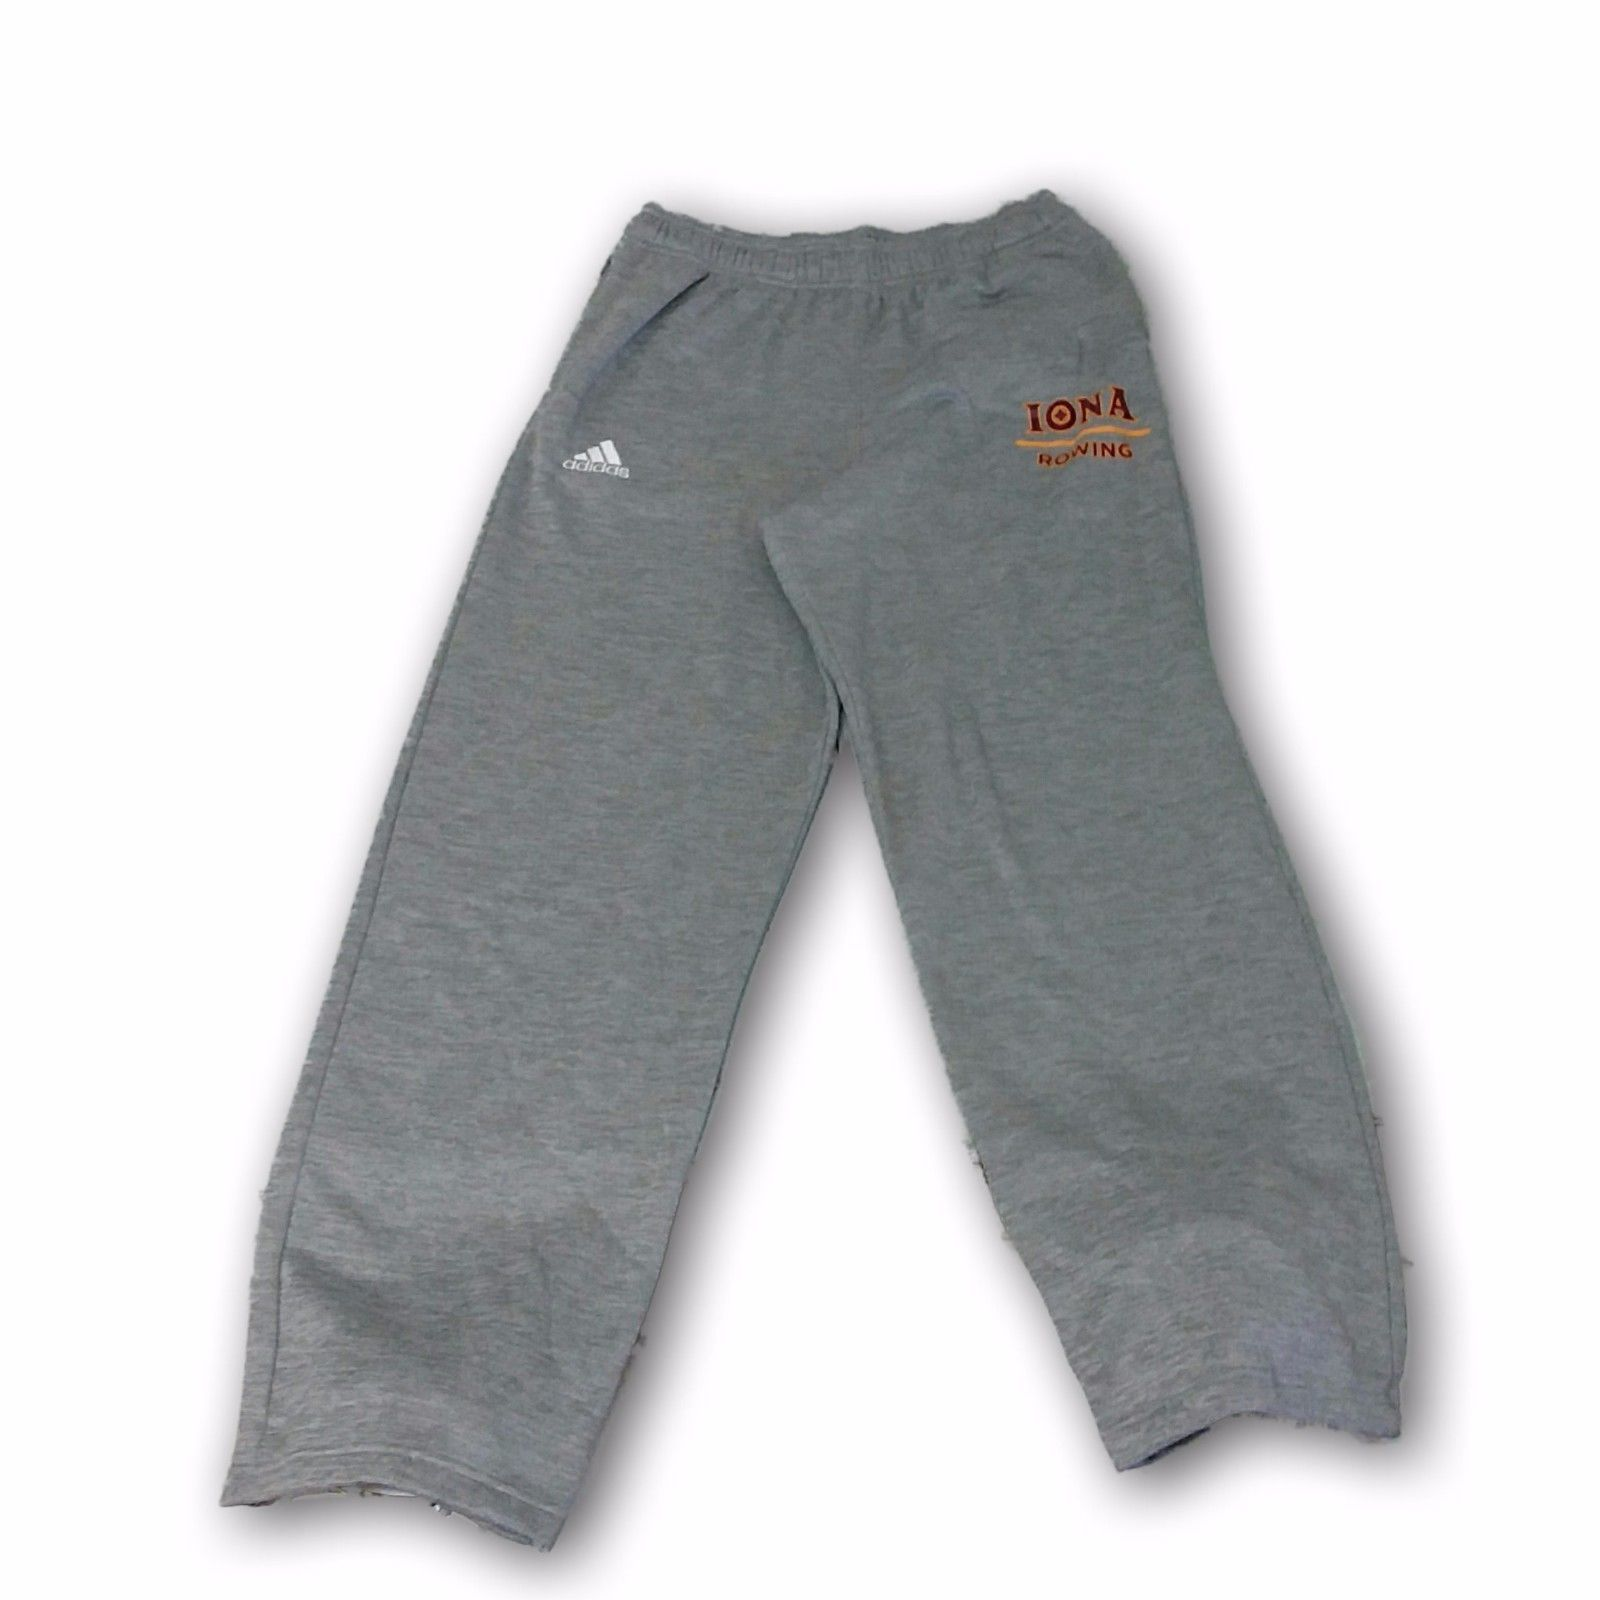 439d275a2 Iona Rowing Gray Color Men s Adidas Pants and 50 similar items